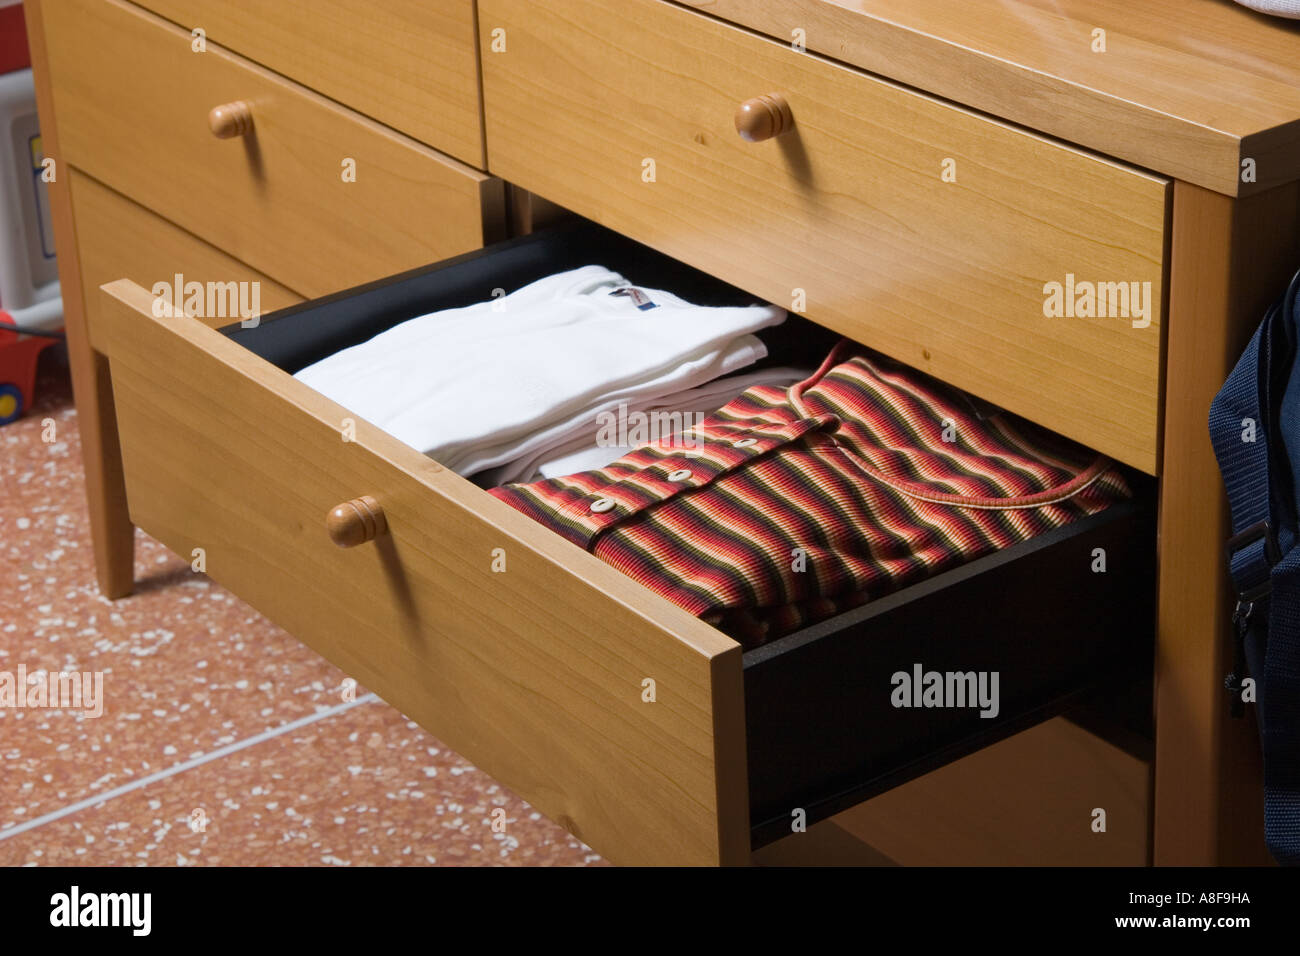 Fitted Cupboard Drawer Clothes Stock Photos Fitted Cupboard Drawer